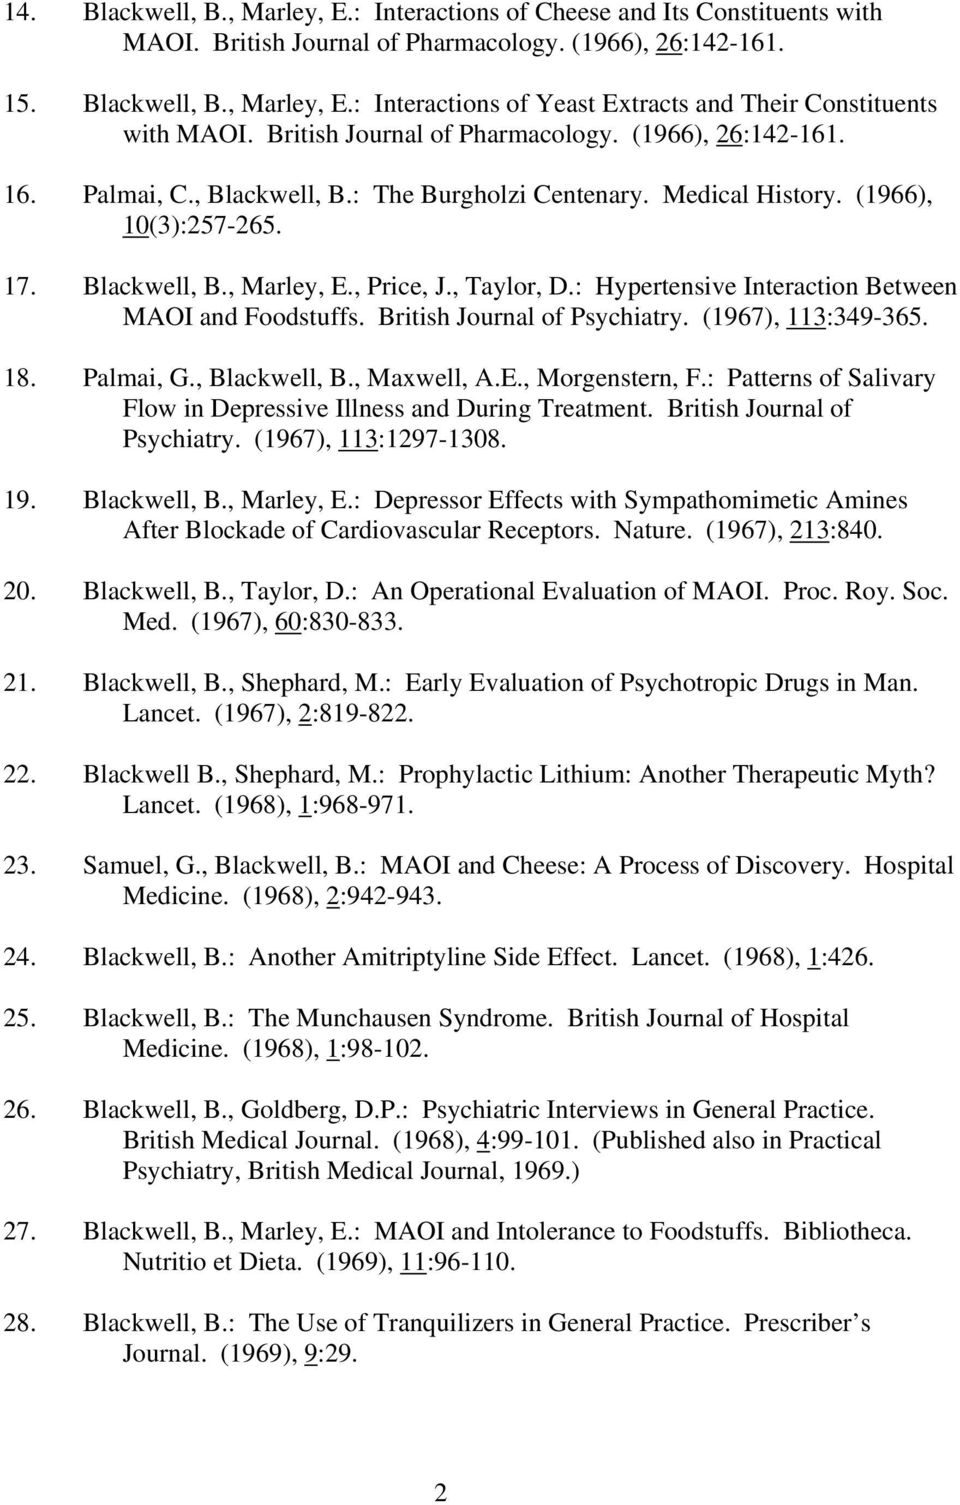 , Taylor, D.: Hypertensive Interaction Between MAOI and Foodstuffs. British Journal of Psychiatry. (1967), 113:349-365. 18. Palmai, G., Blackwell, B., Maxwell, A.E., Morgenstern, F.